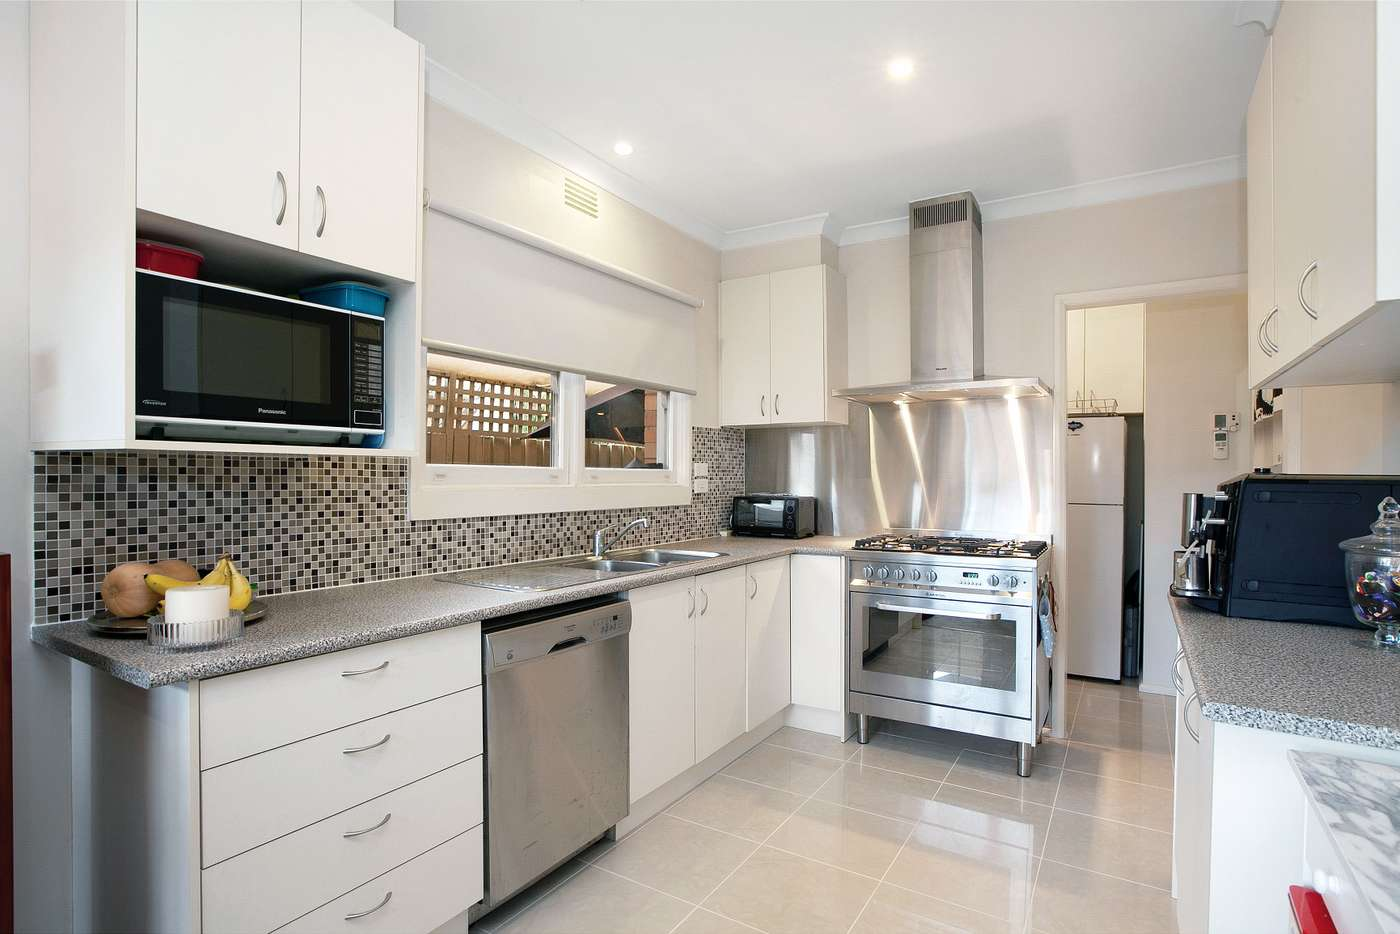 Fifth view of Homely house listing, 28 Ameily Crescent, Reservoir VIC 3073